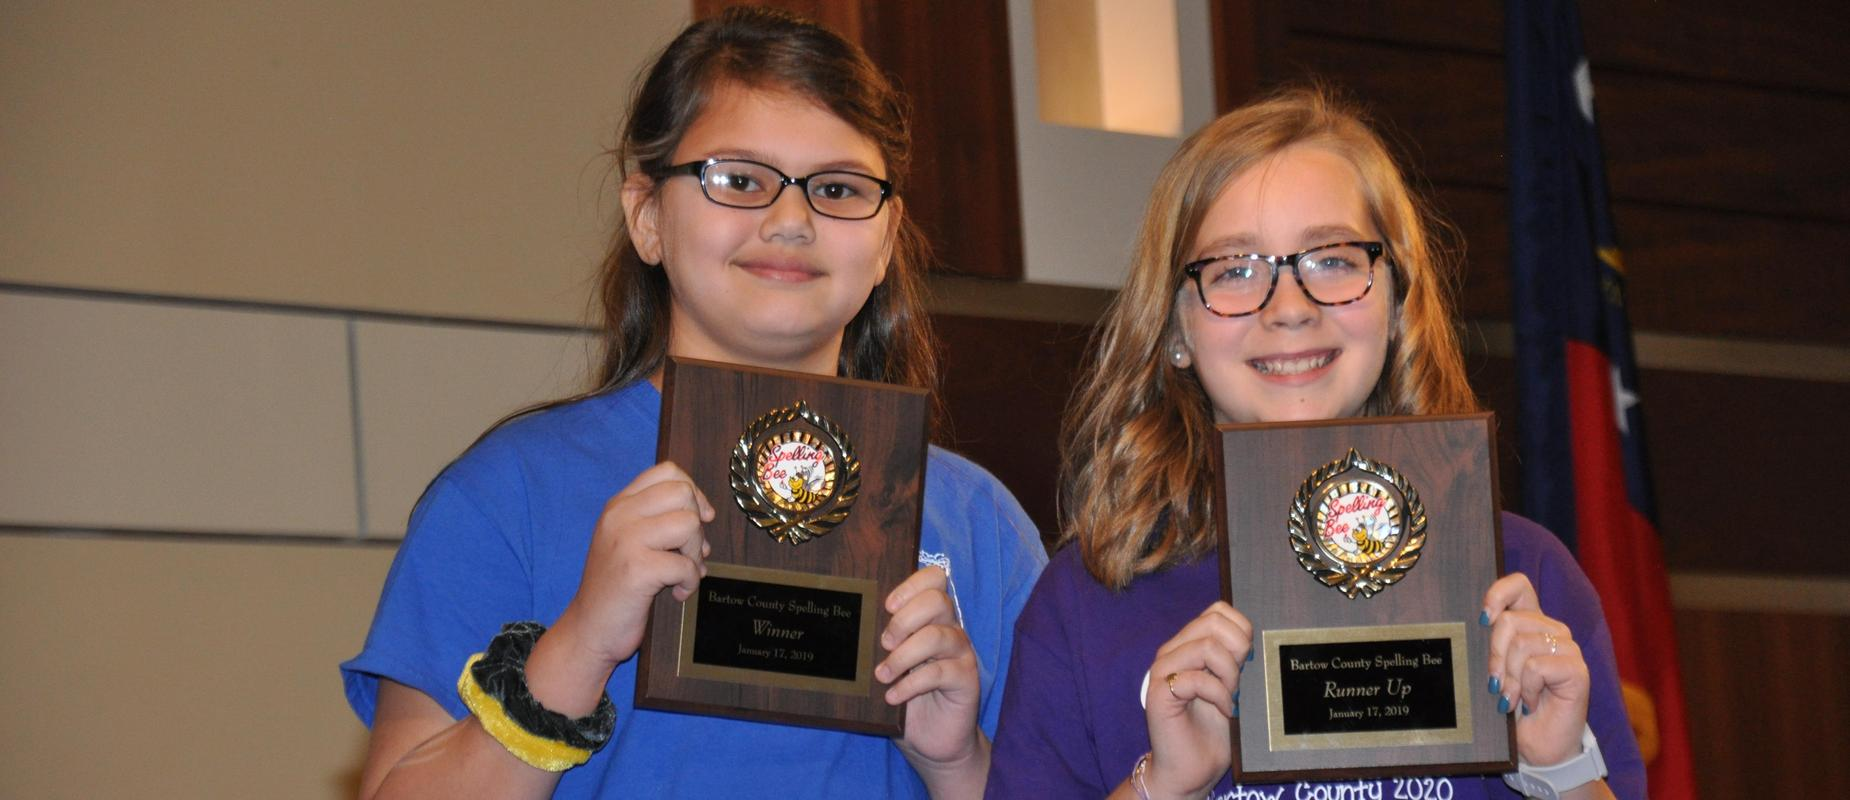 Spelling bee winner, Leilah Bedford, and runner-up, Mary Harris Gambill!